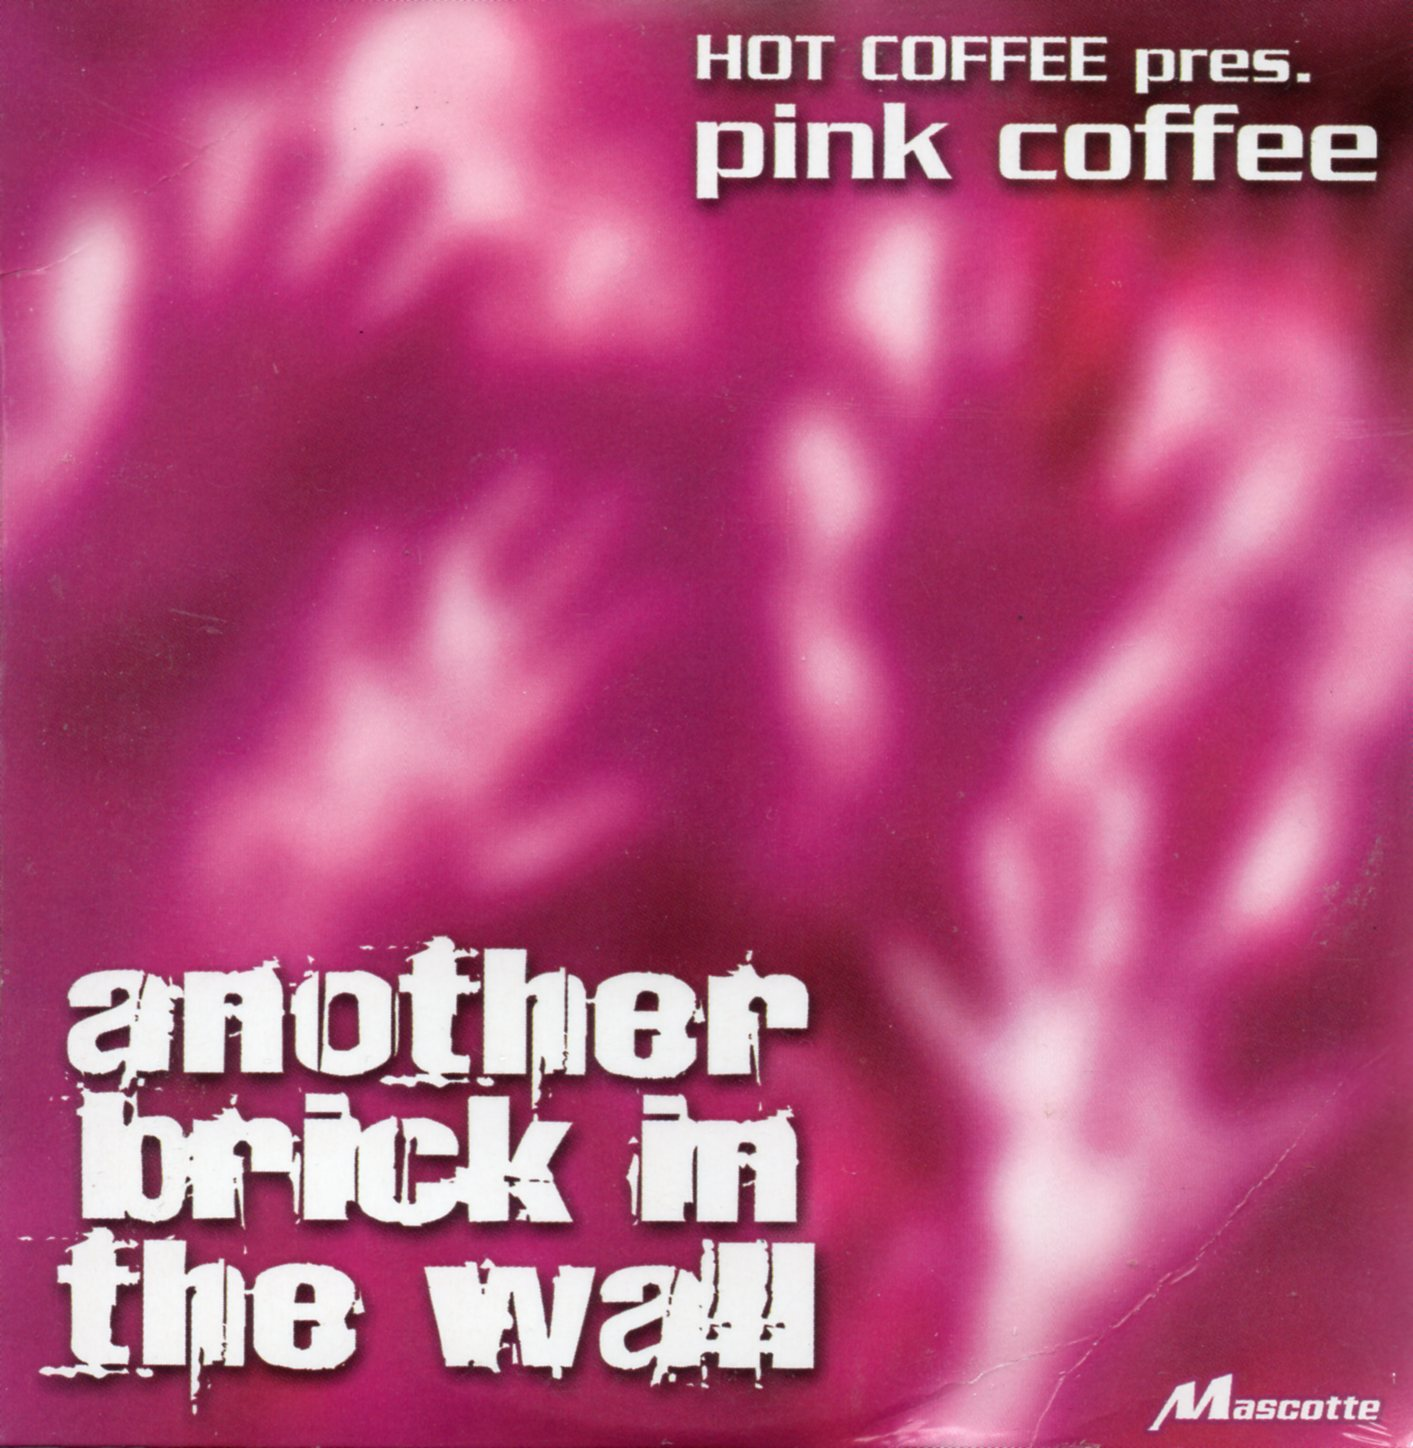 HOT COFFEE PRES. PINK COFFEE - PINK FLOYD - Another Brick In the Wall 2-TRACK CARD SLEEVE - CD single